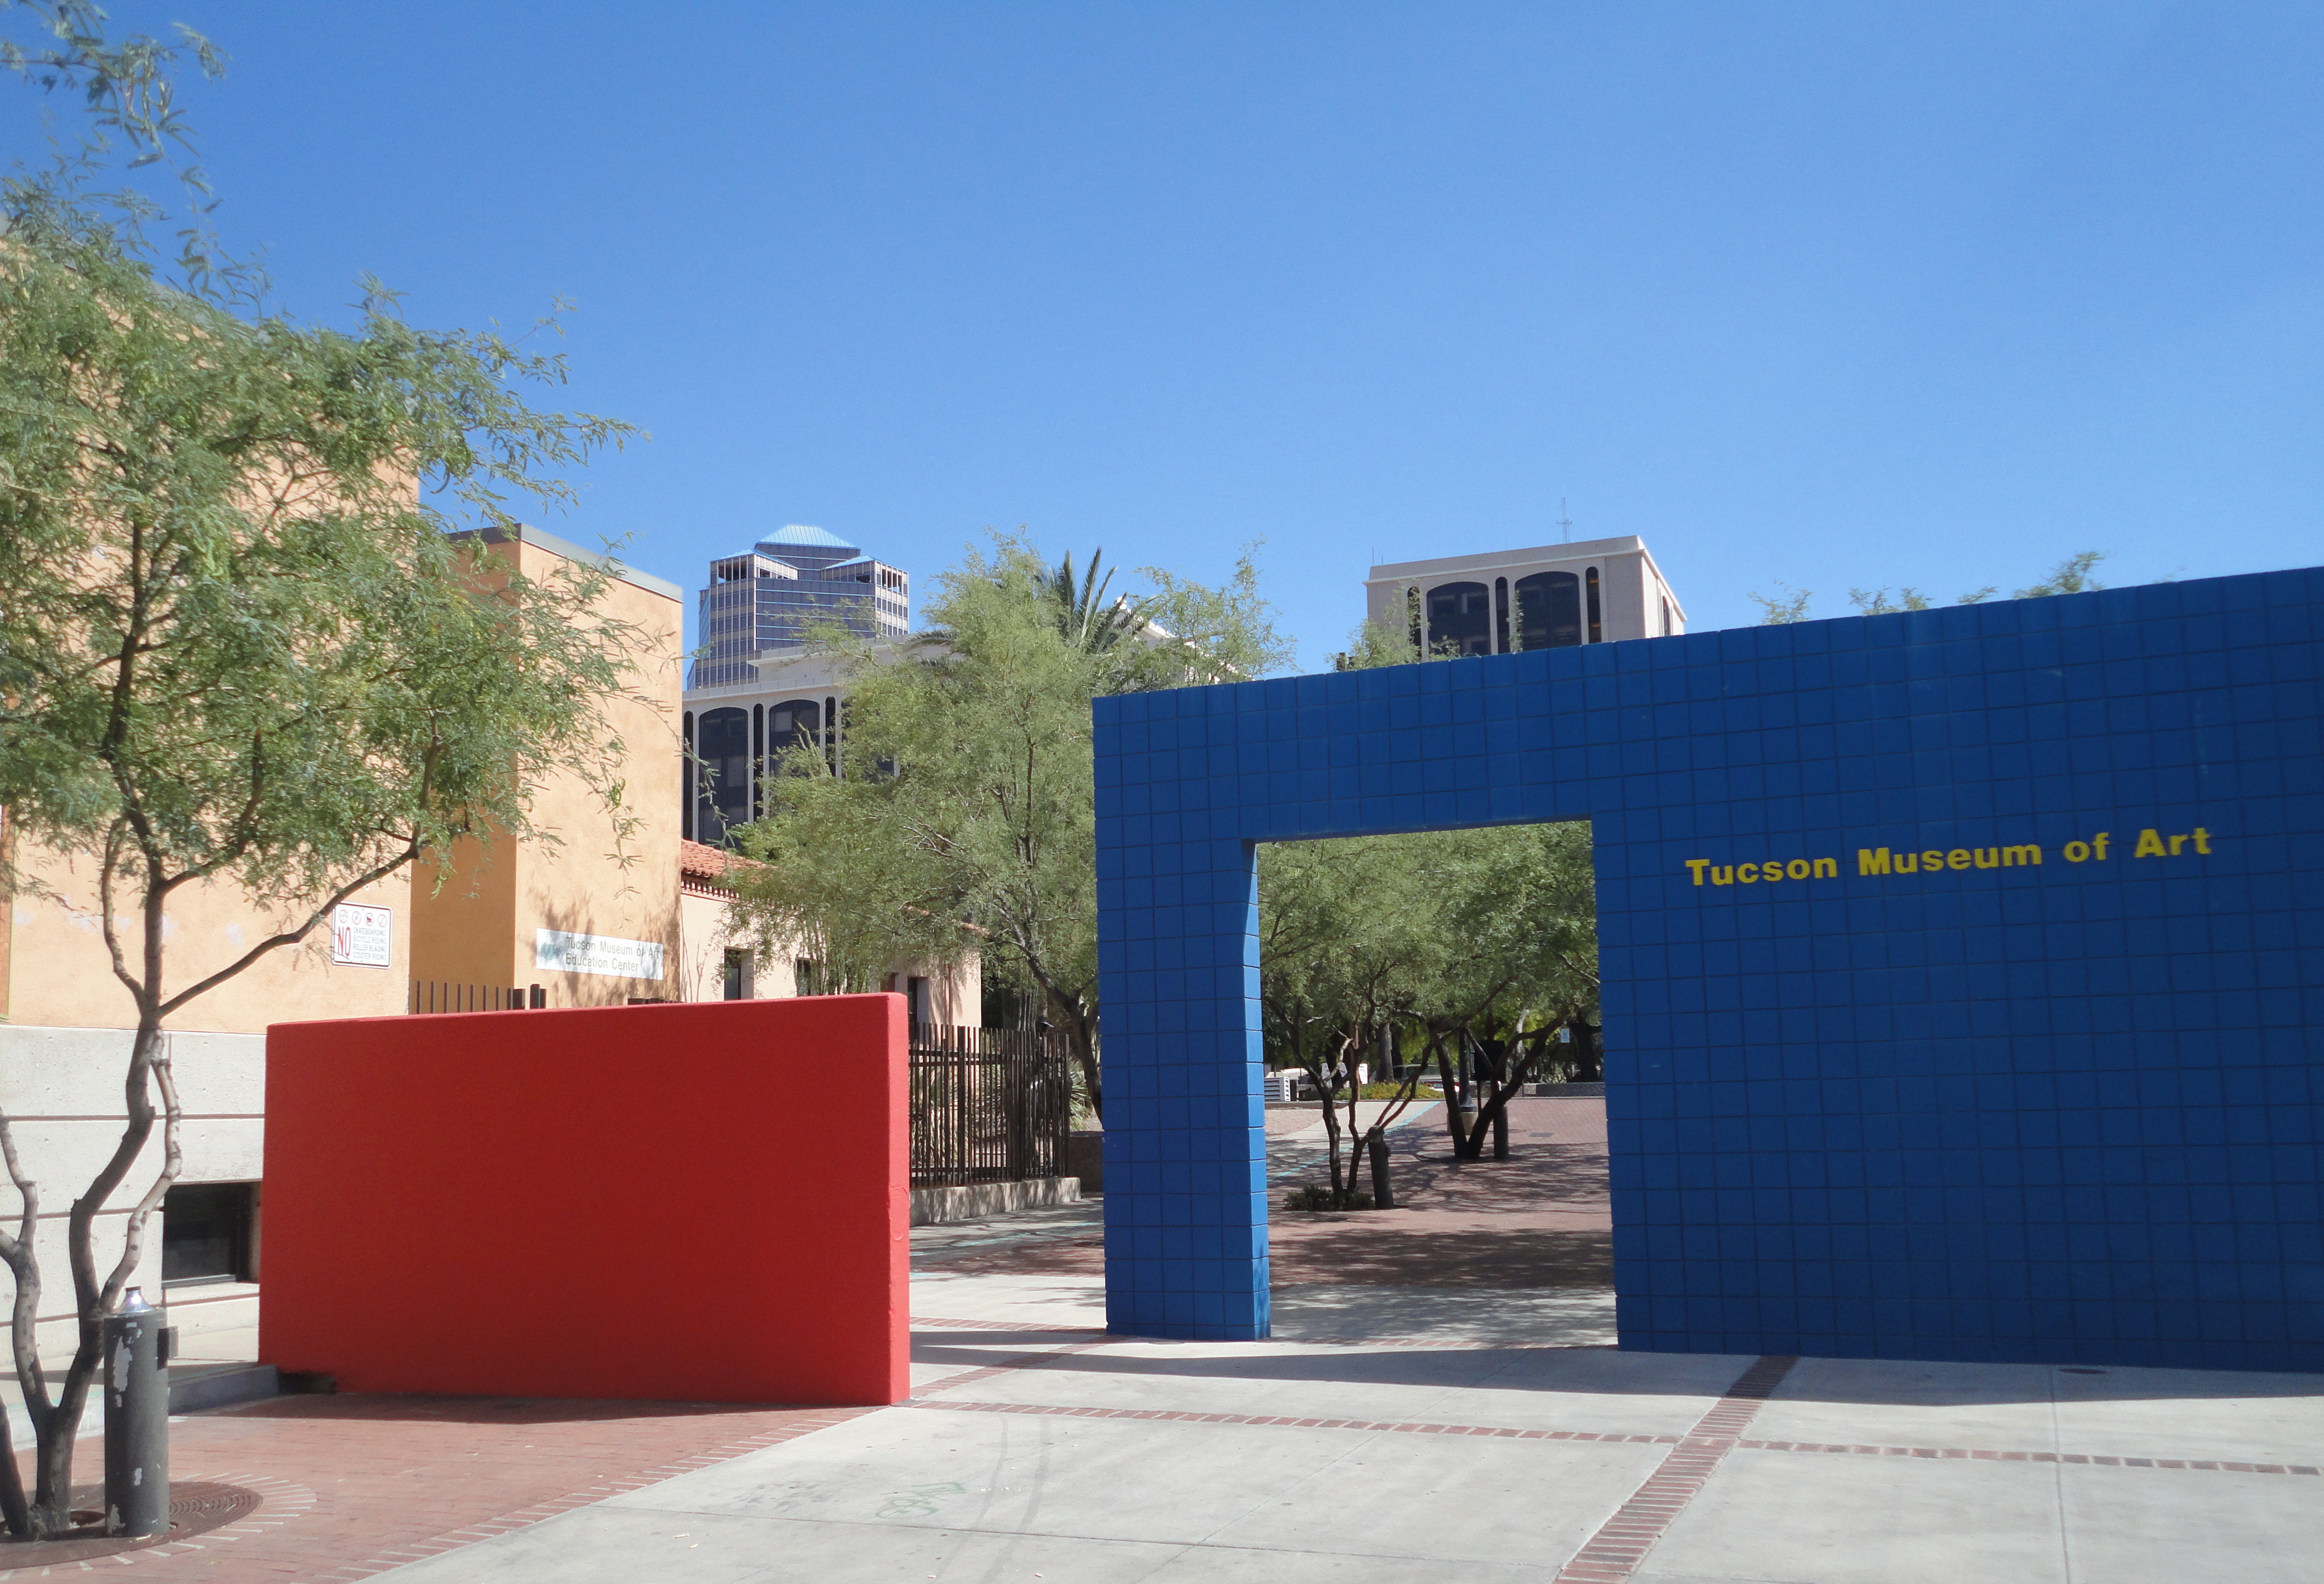 Tucson Museum of Art archway